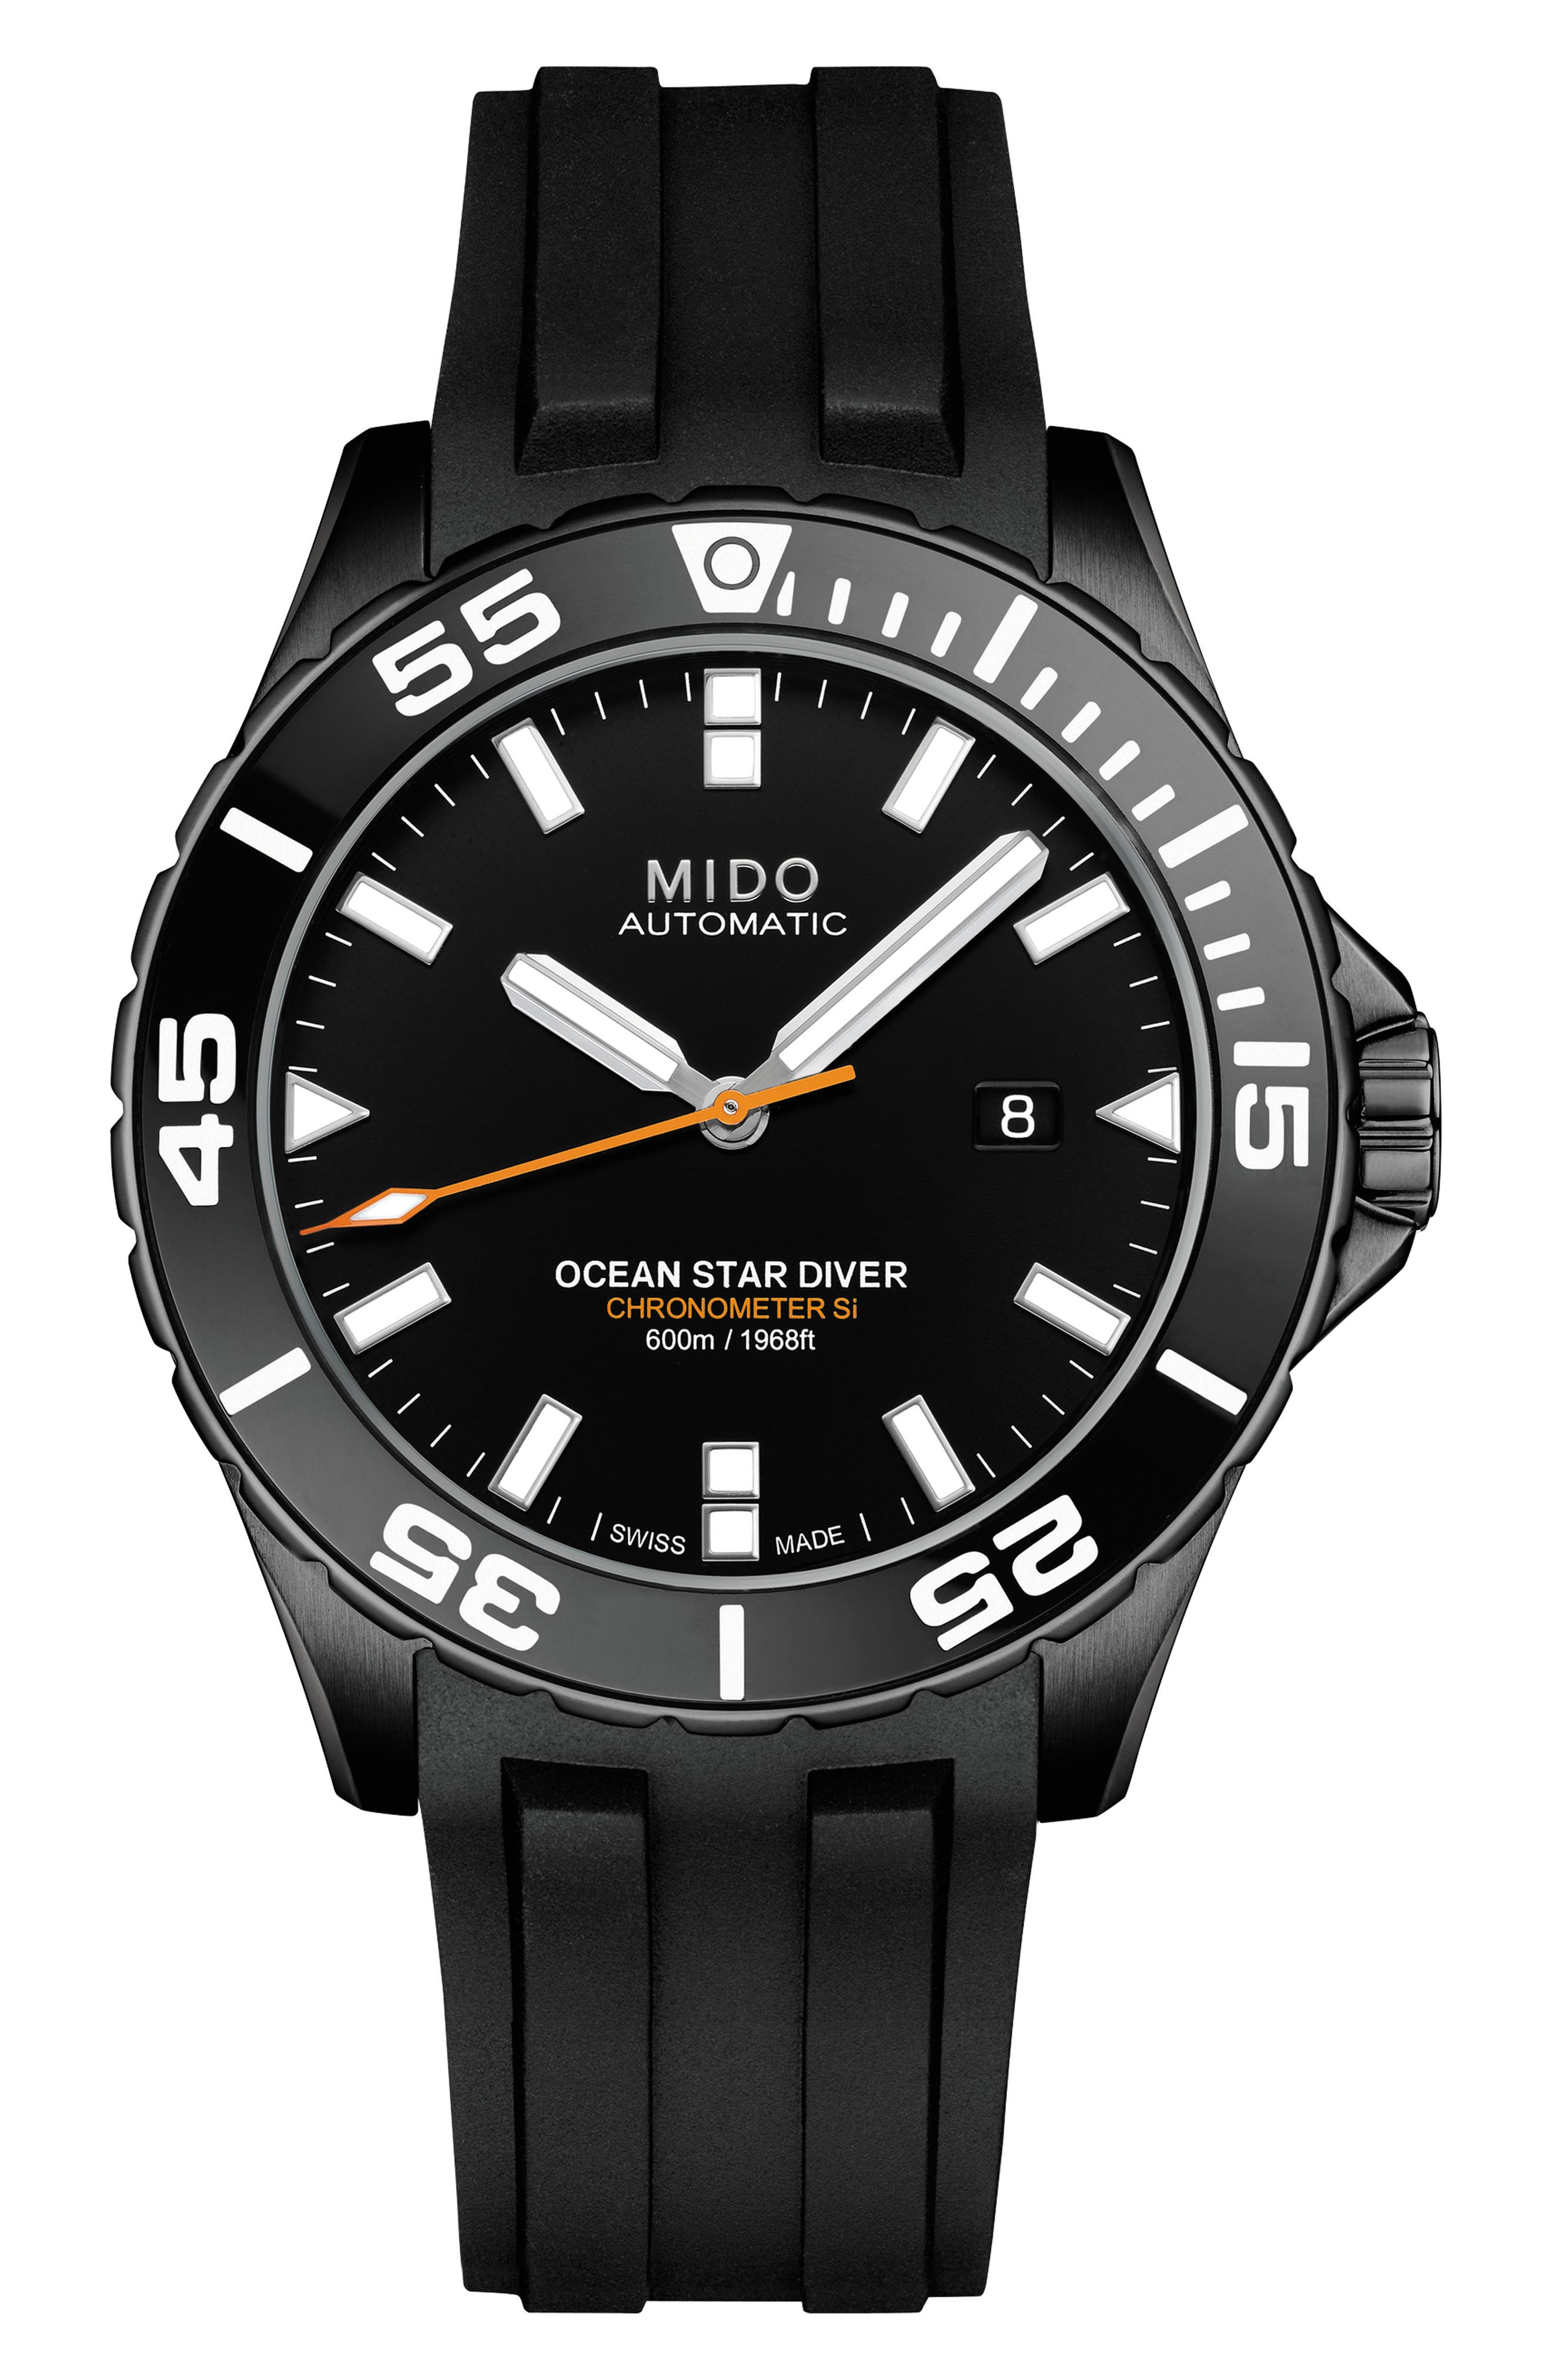 MIDO Ocean Star Diver 600 Automatic Rubber Strap Watch, 43.5Mm in Black/ Silver